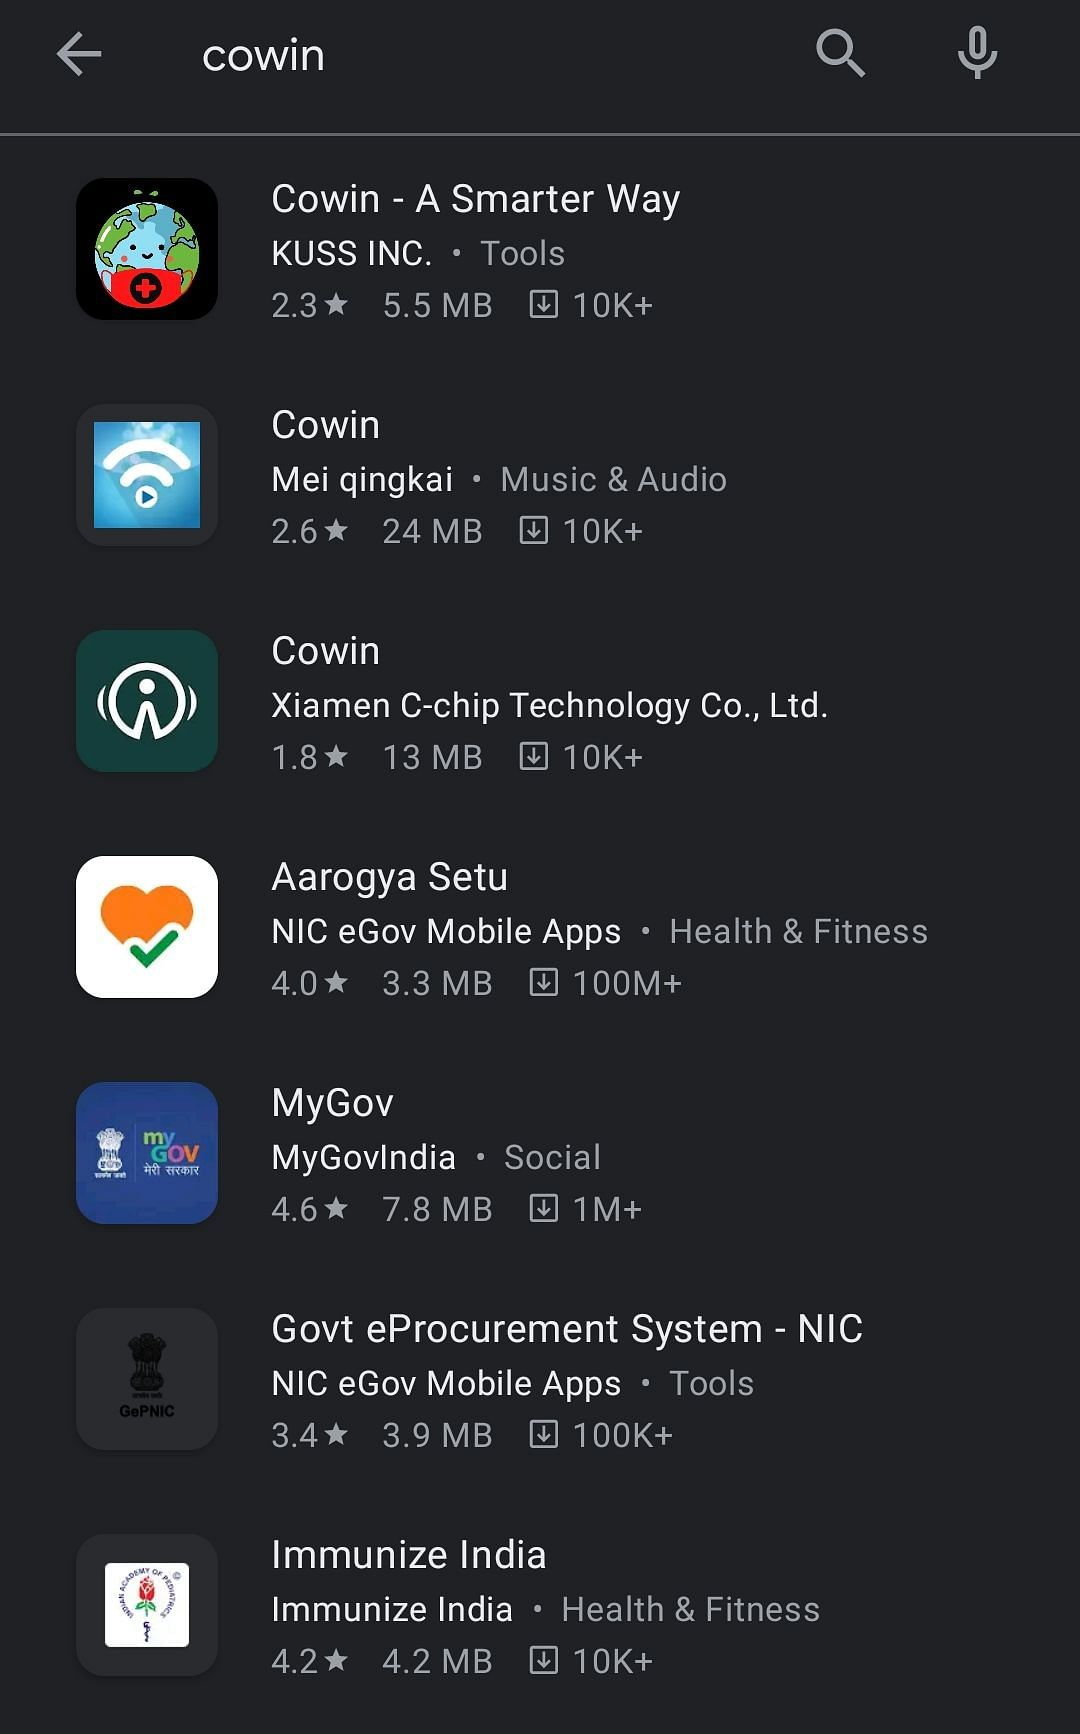 Search results for Co-WIN app on Google Play Store.